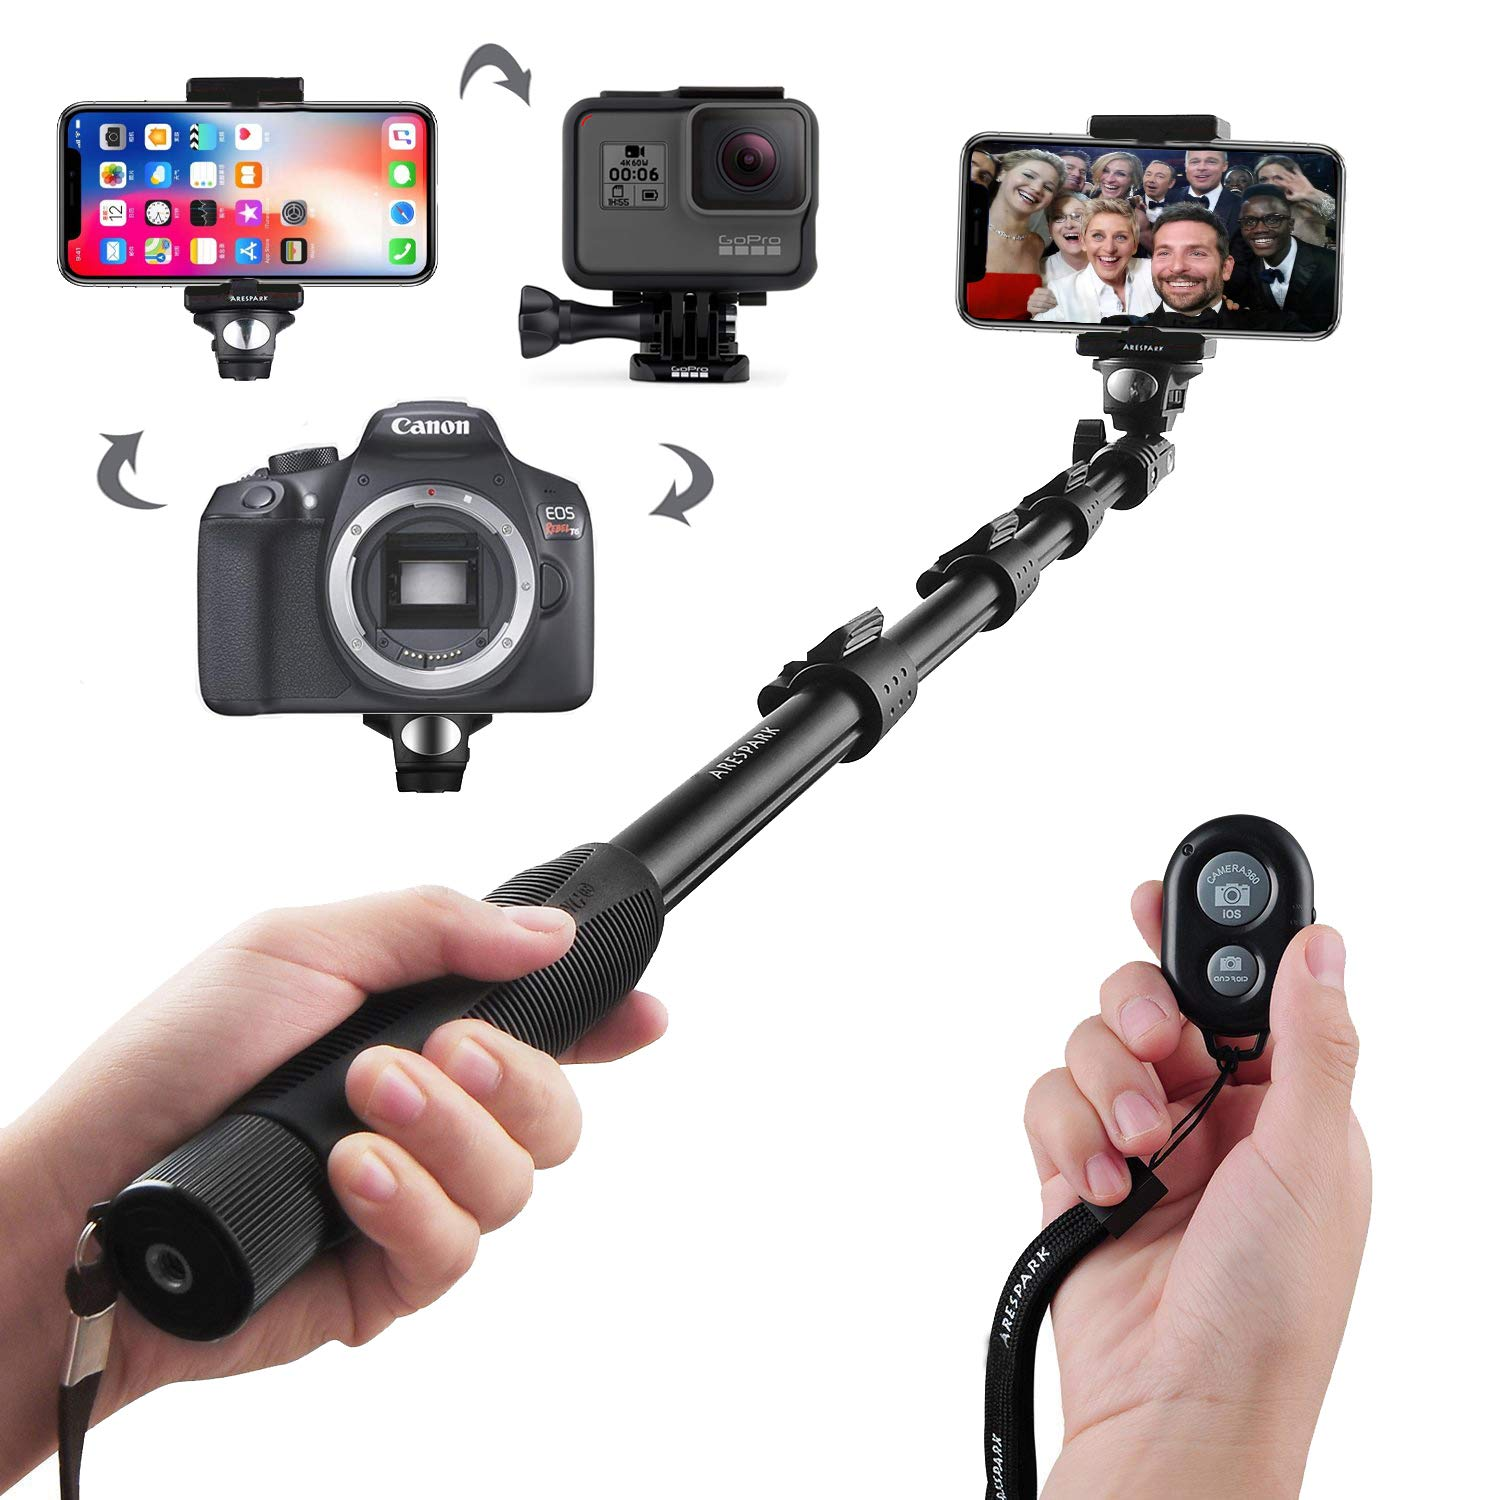 Selfie Stick, Arespark Wireless Extendable Selfie Monopod Portable Selfie Pole for Gopros, DSLR, Cameras & iPhoneX 8 7 Plus Android Samsung Galaxy S9 S8 Plus Cellphones with Bluetooth Remote Control, Extends to 50 Inches, Best Gifts selfie1